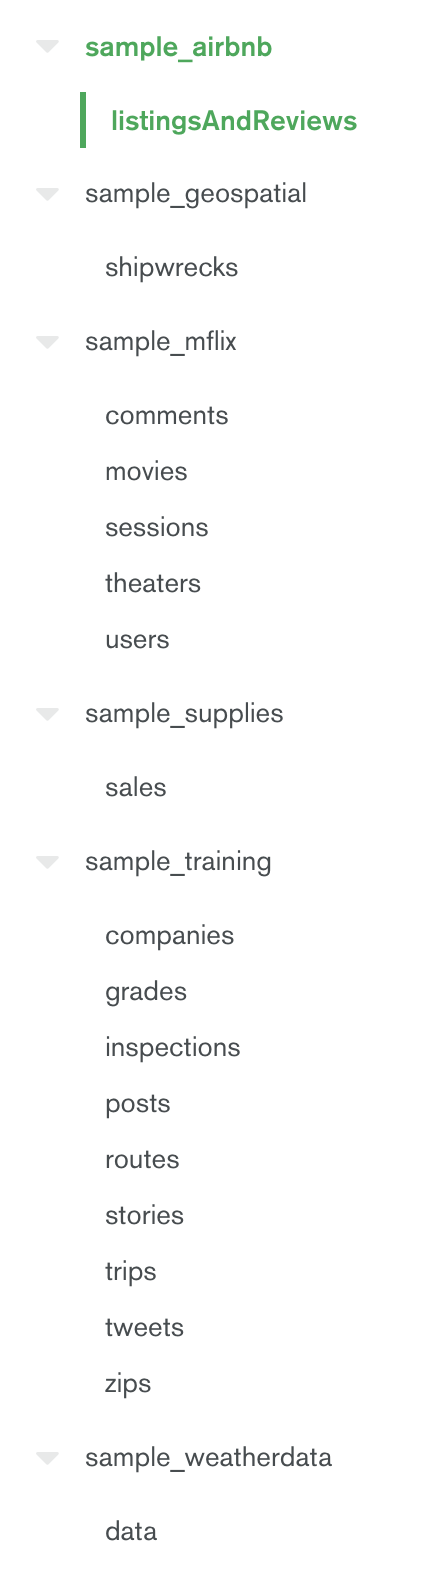 Available Databases and Schemas